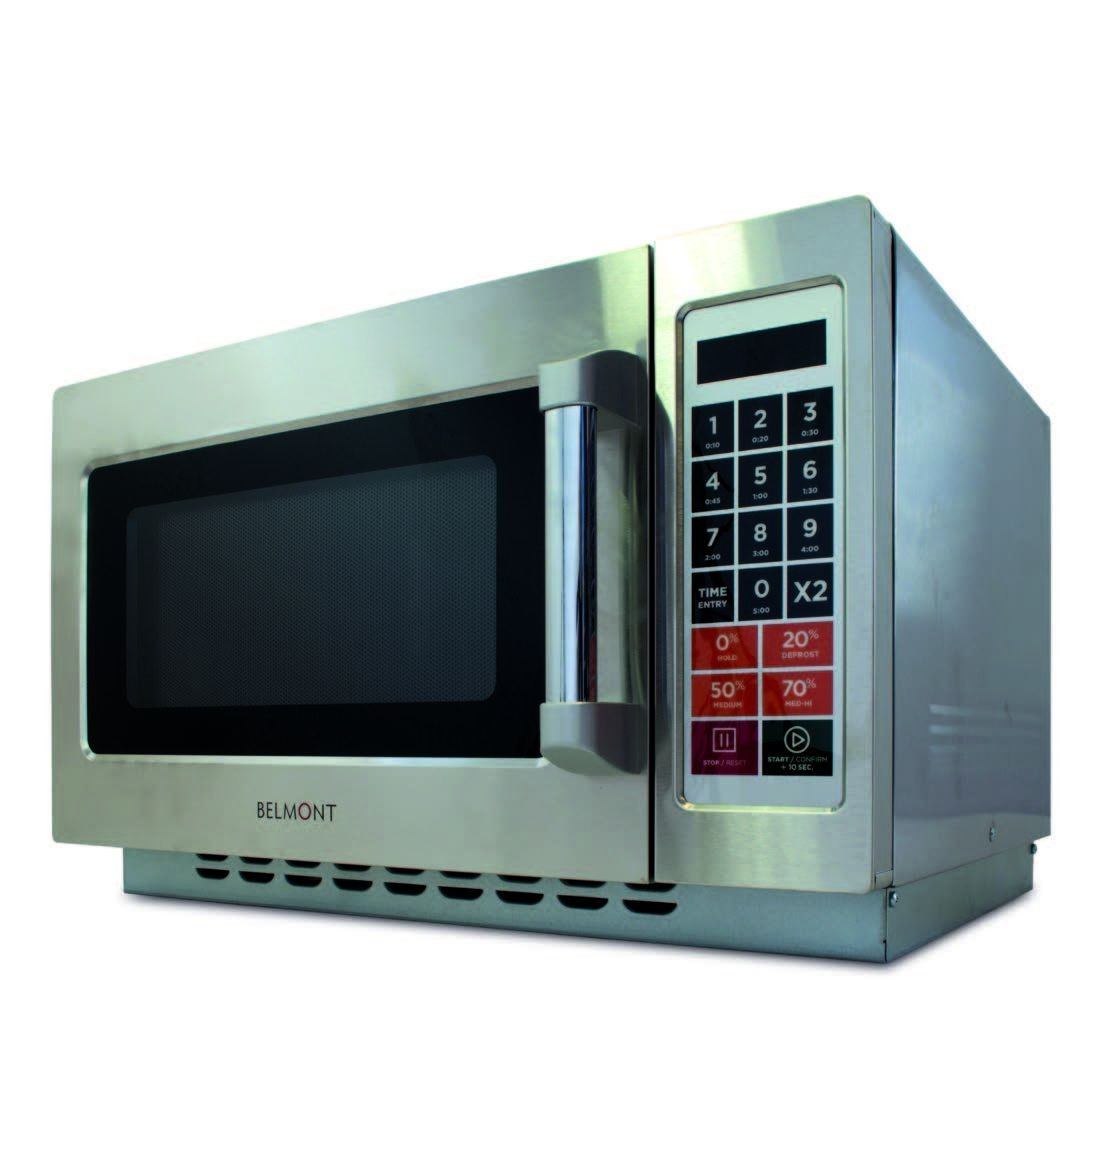 belmont mwo1000 programmable 1000w microwave with 5 power levels